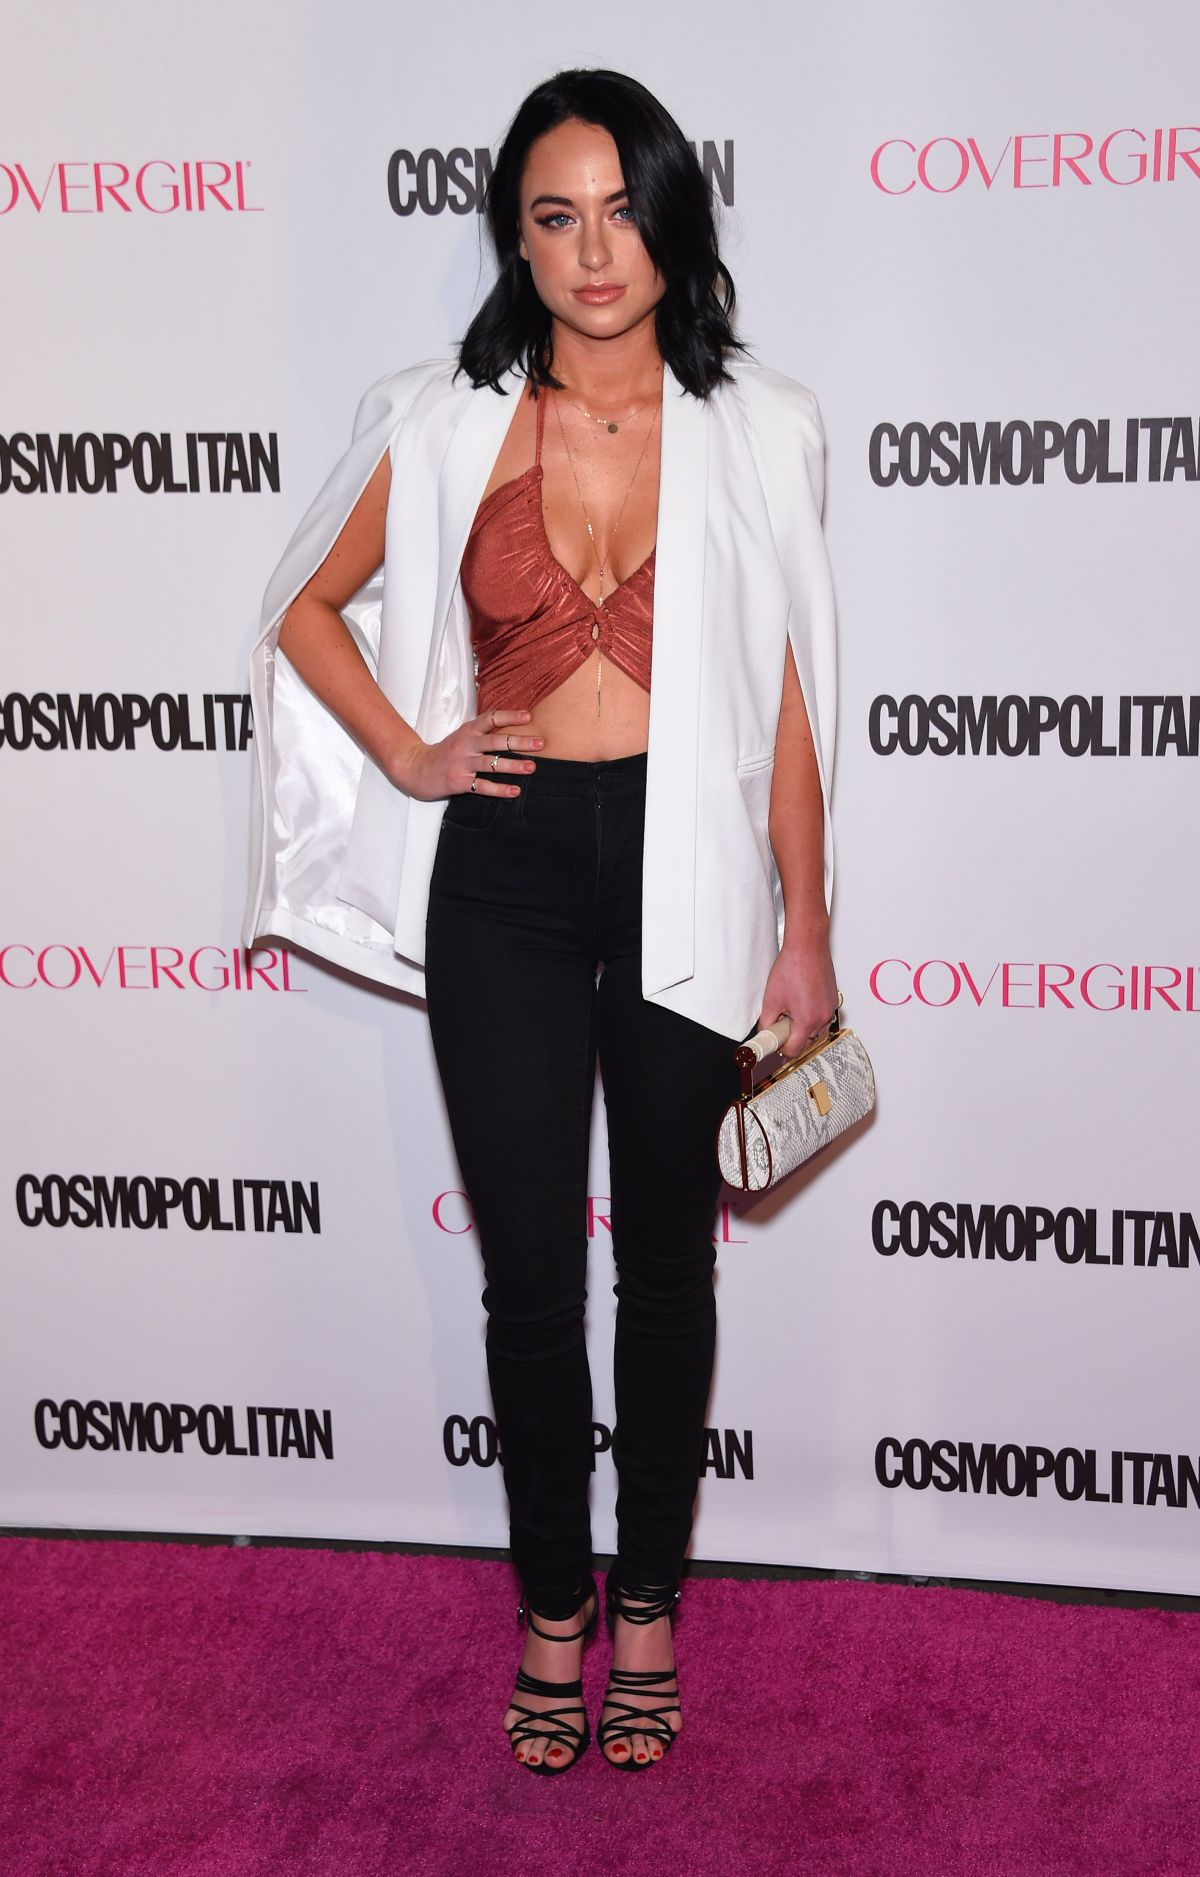 ALEXX MACK at Cosmopolitan's 50th Birthday Celebration in West Hollywood 10/12/2015